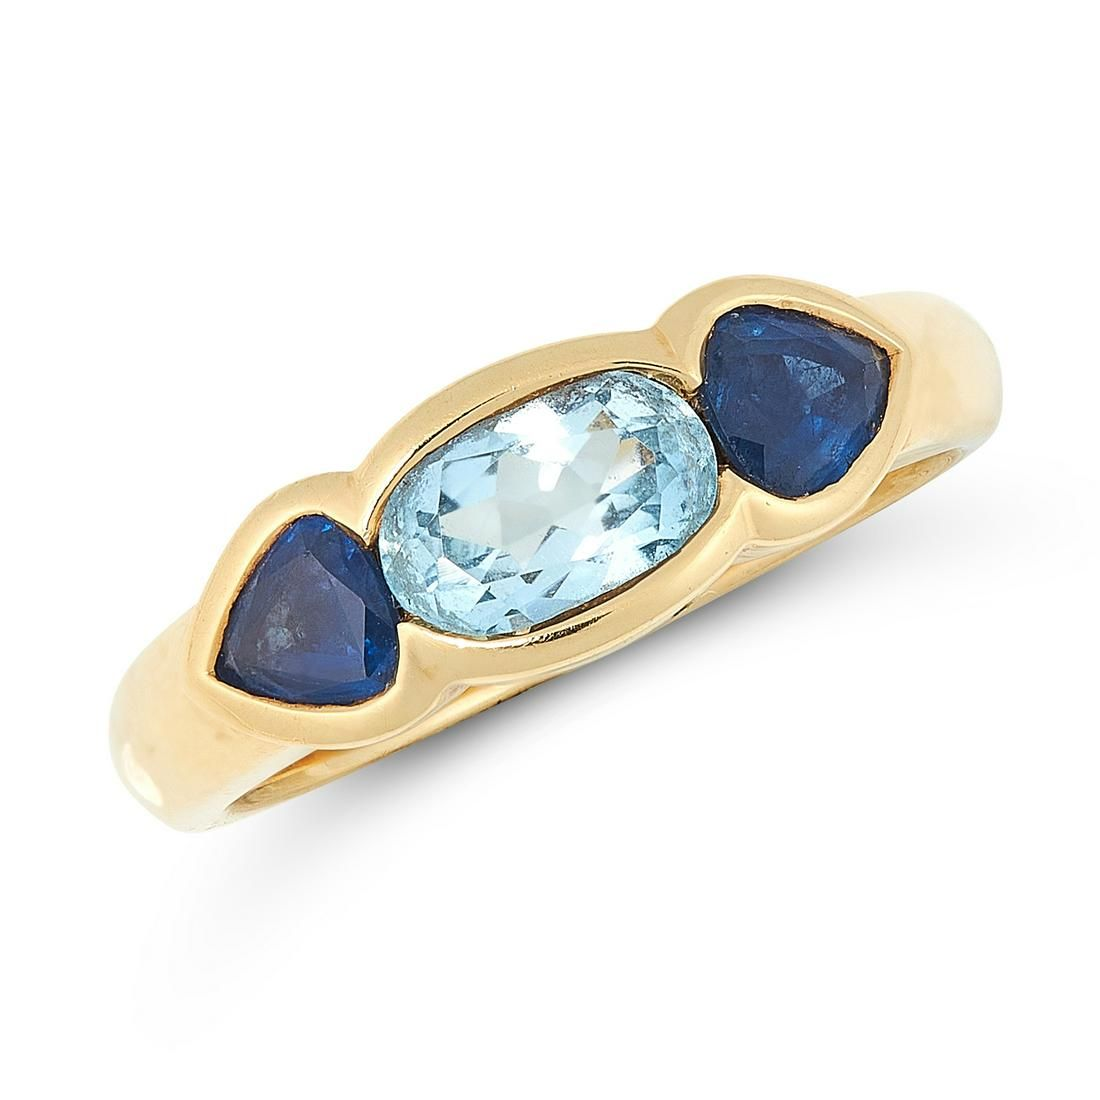 AN AQUAMARINE AND SAPPHIRE DRESS RING in 18ct yellow